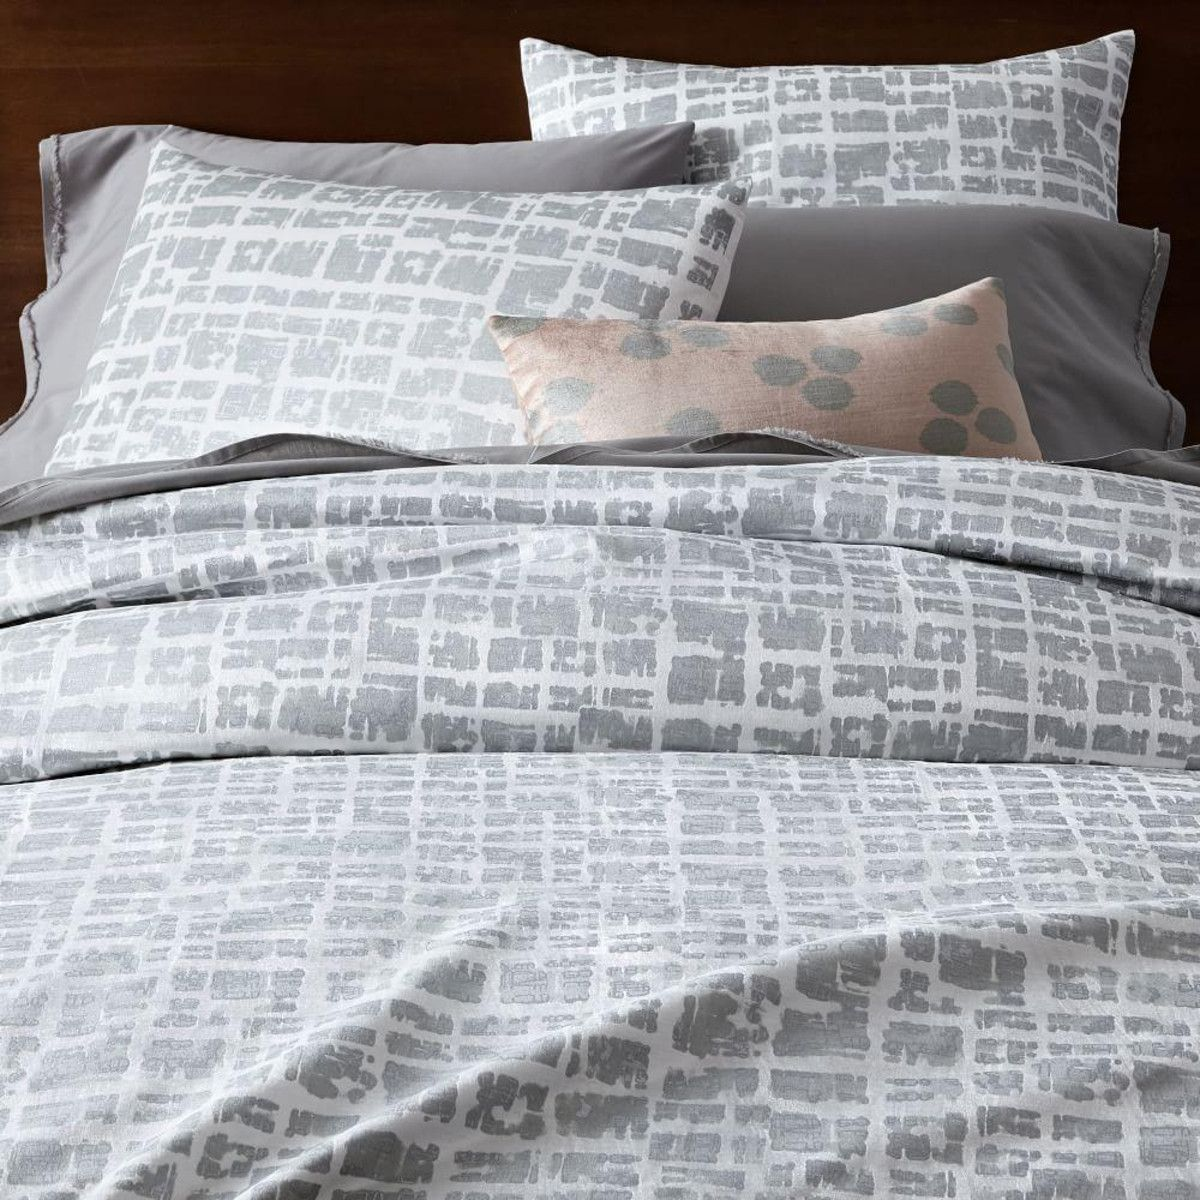 thread of zara floral pattern quilt mt malta home diamond product image metallic duvet with the cover